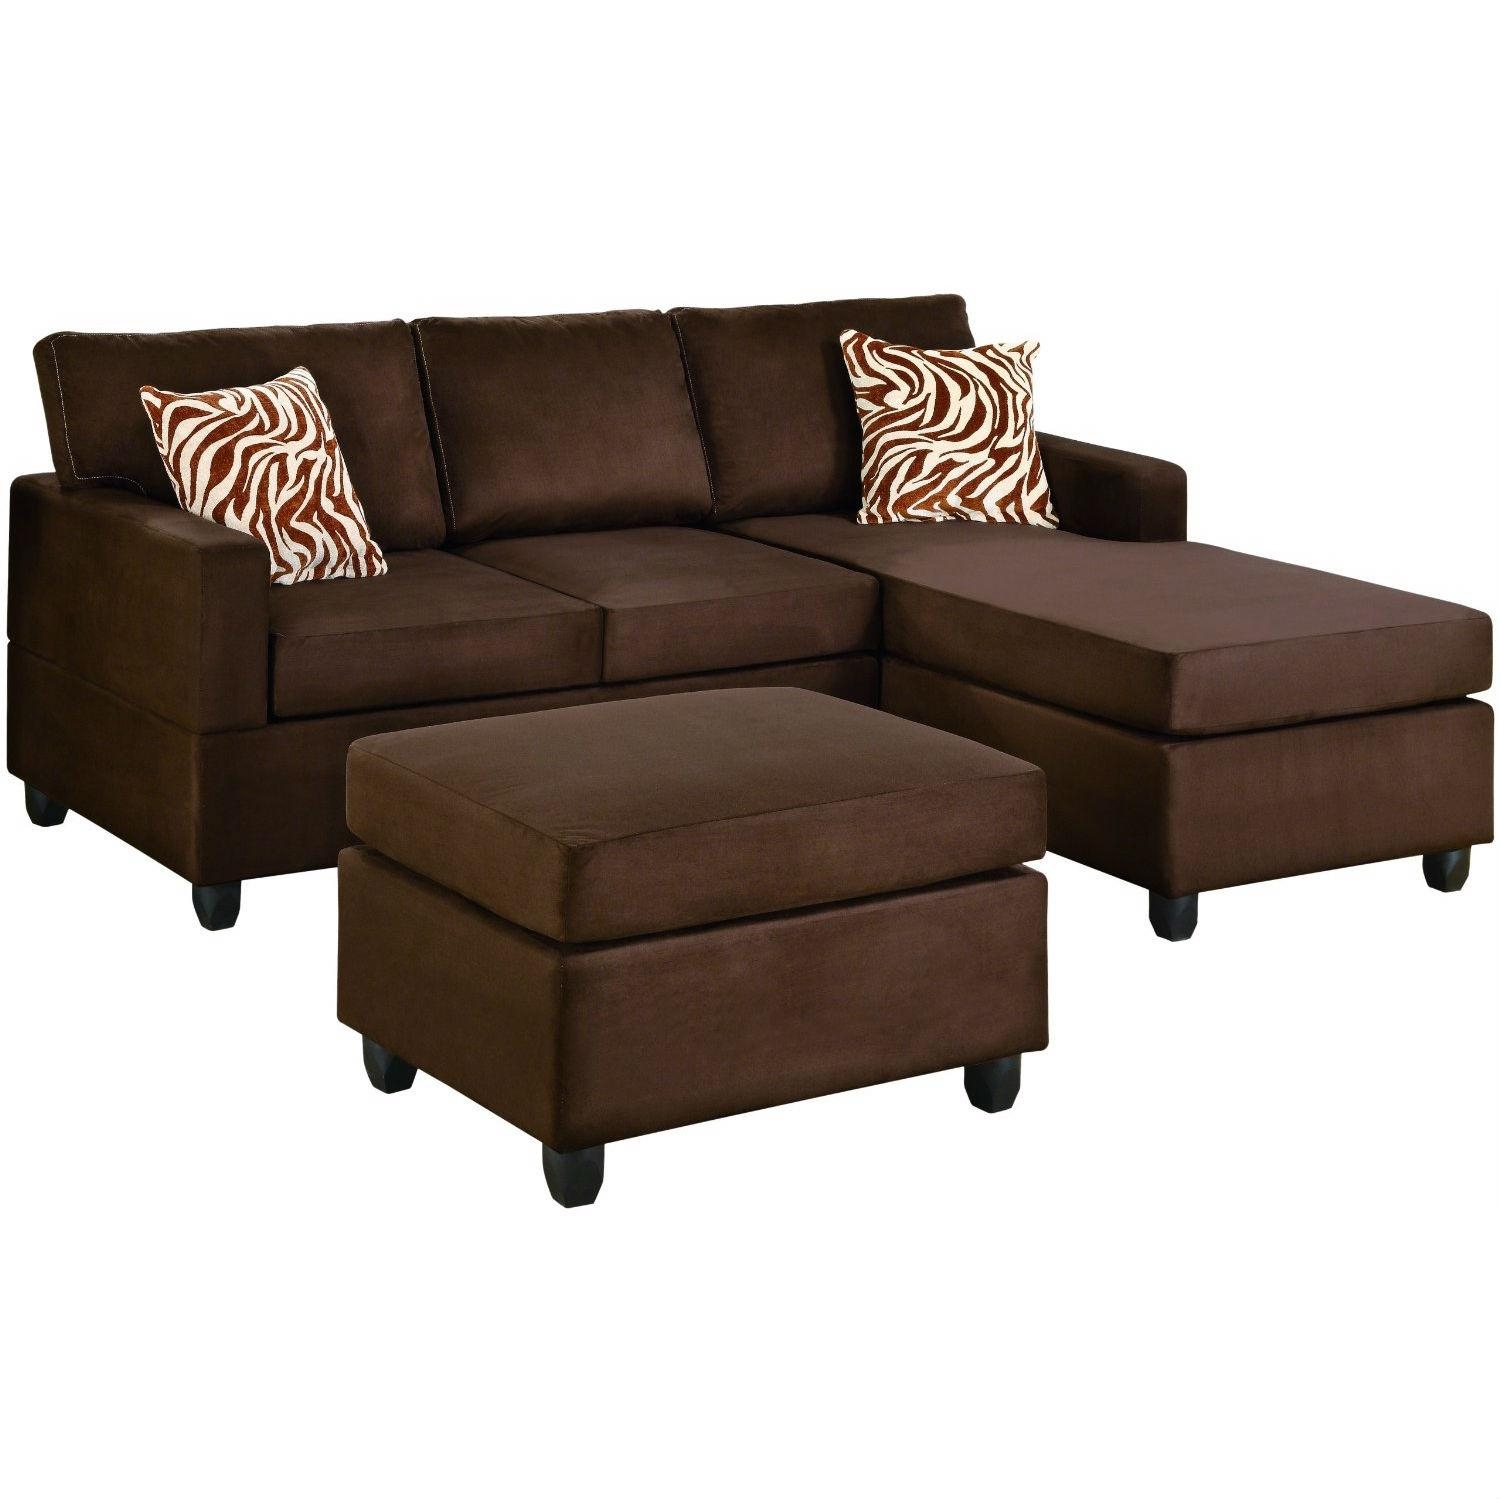 Furniture: Sofas Under 300 | Sleeper Sofa Big Lots | Nice Couches Pertaining To Big Lots Sofa Sleeper (View 15 of 20)